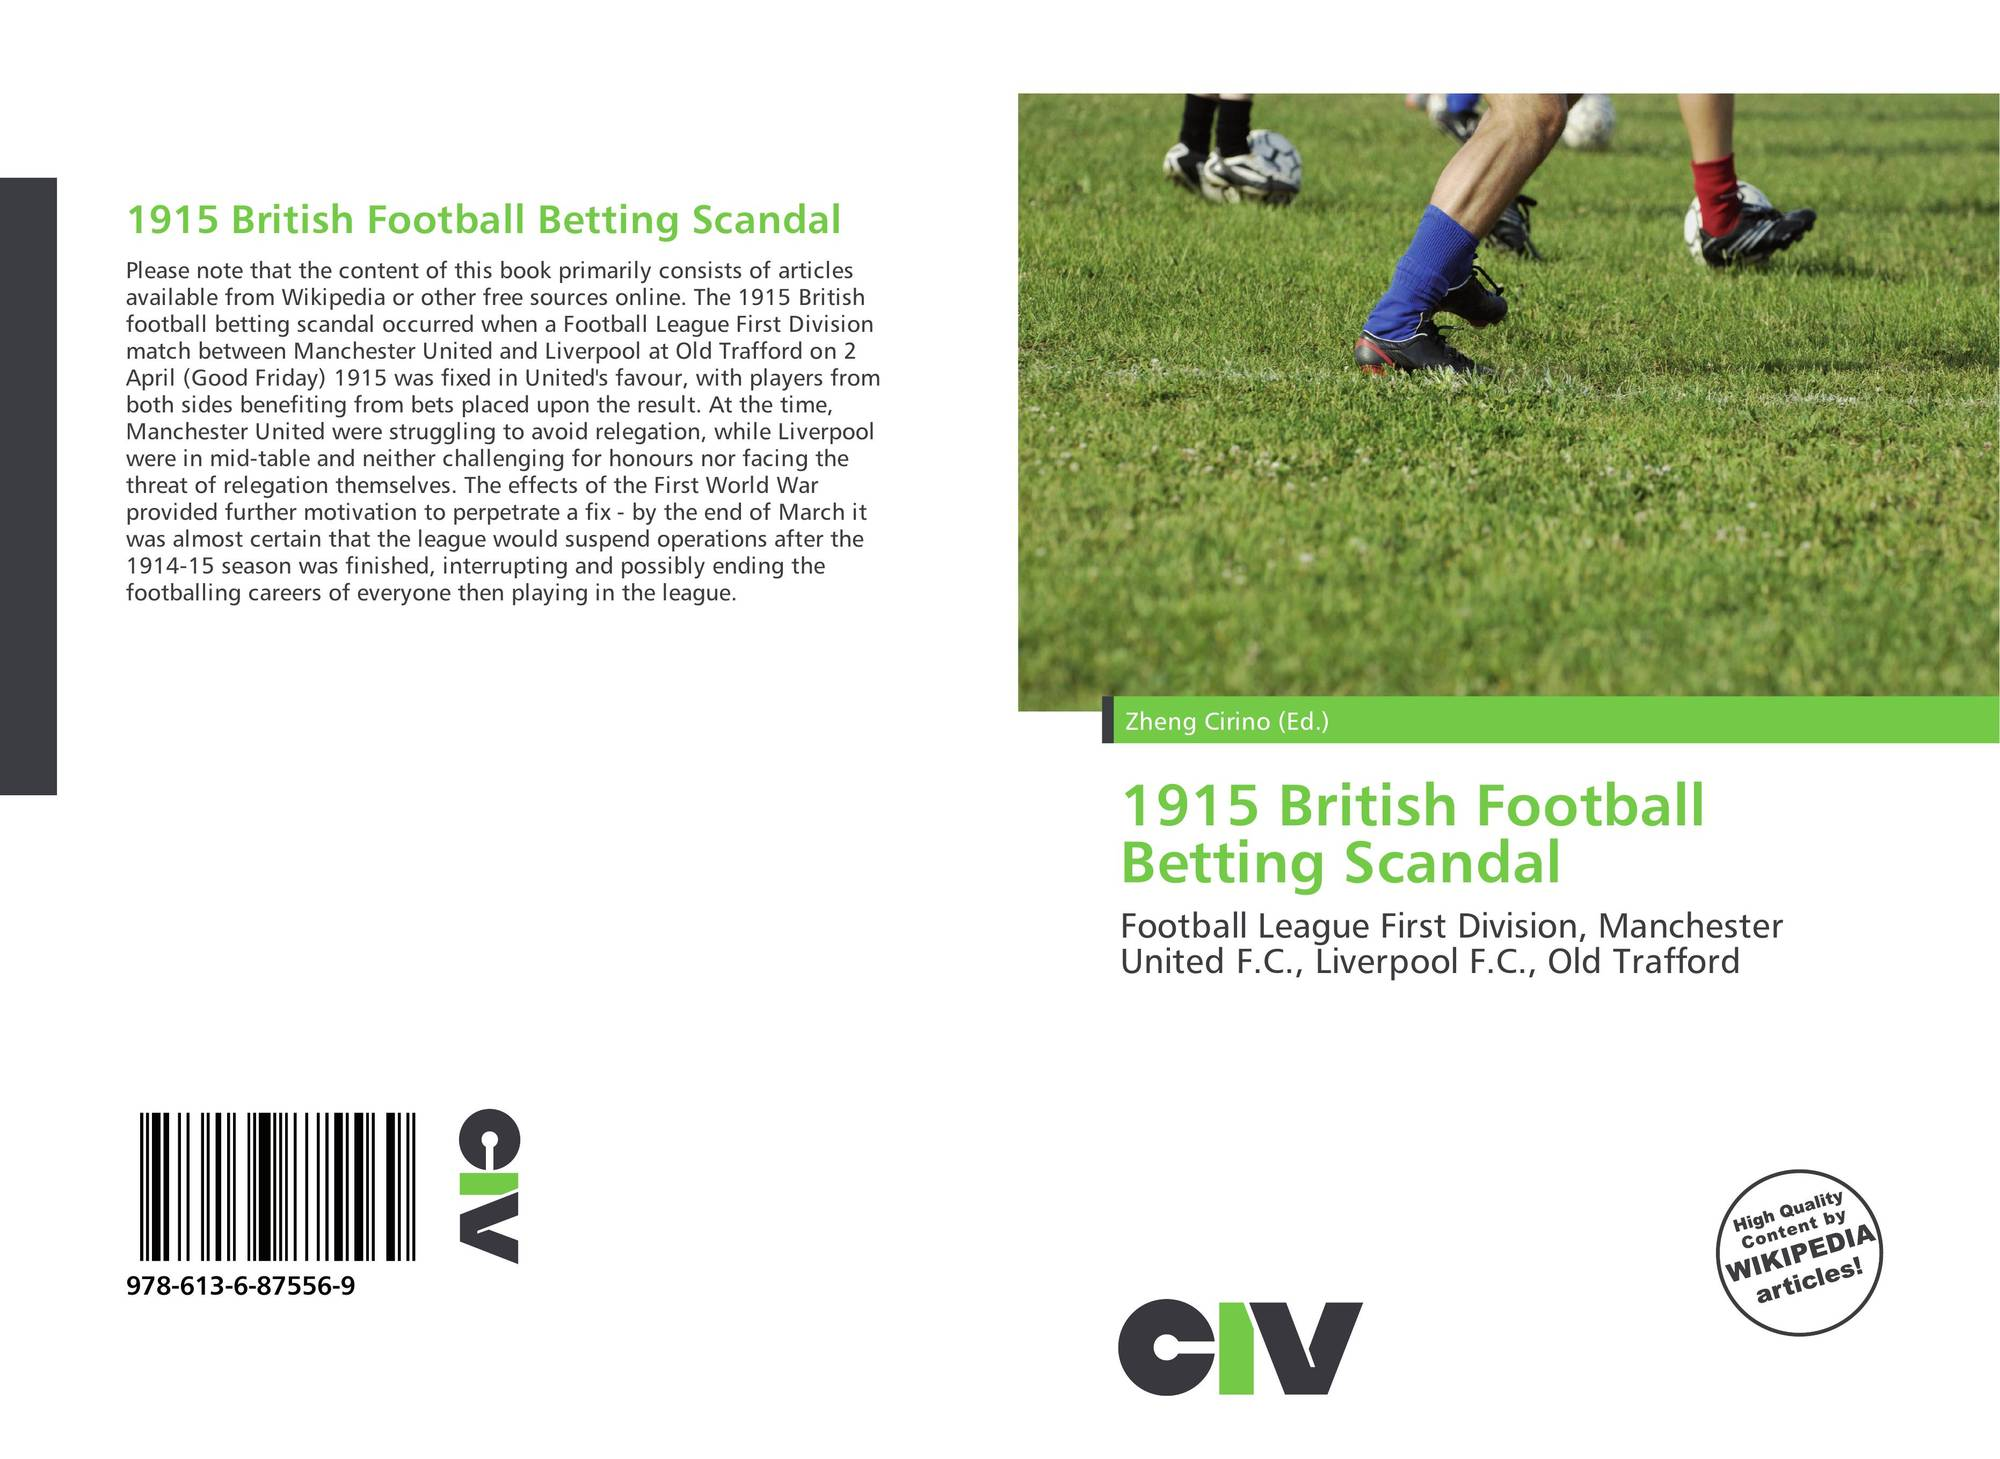 1964 british betting scandal football results online cricket betting india legal news